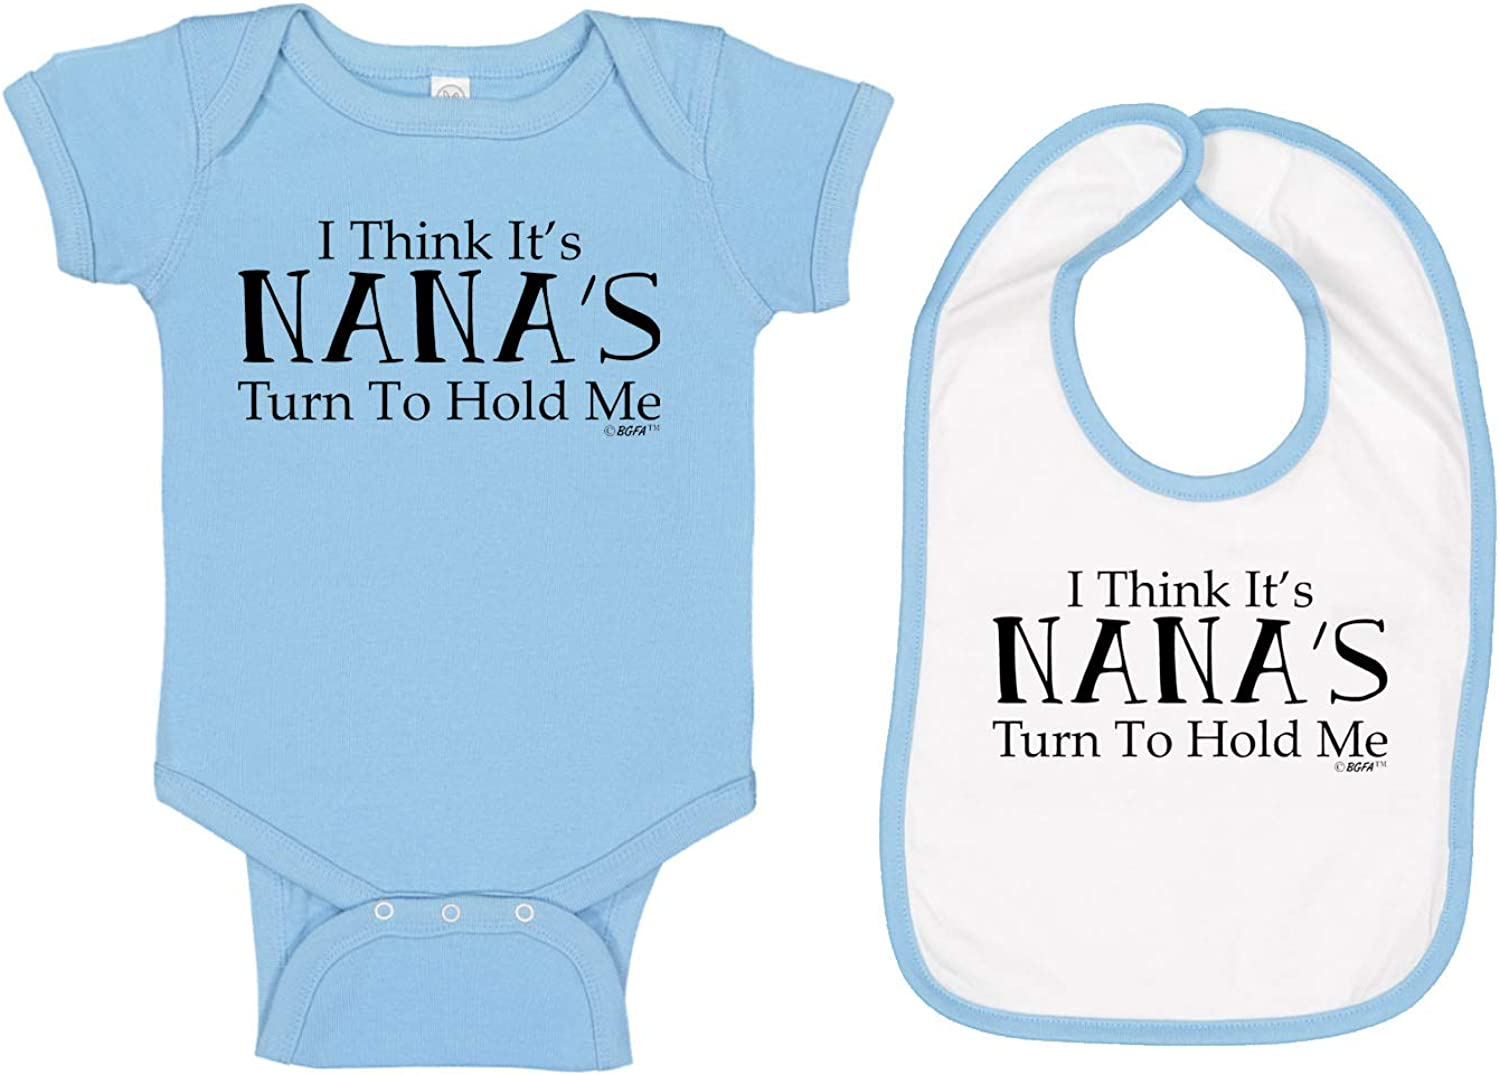 Baby Gifts For All I Think Its Nanas Turn to Hold Me Nana Baby Bodysuit Bib Bundle